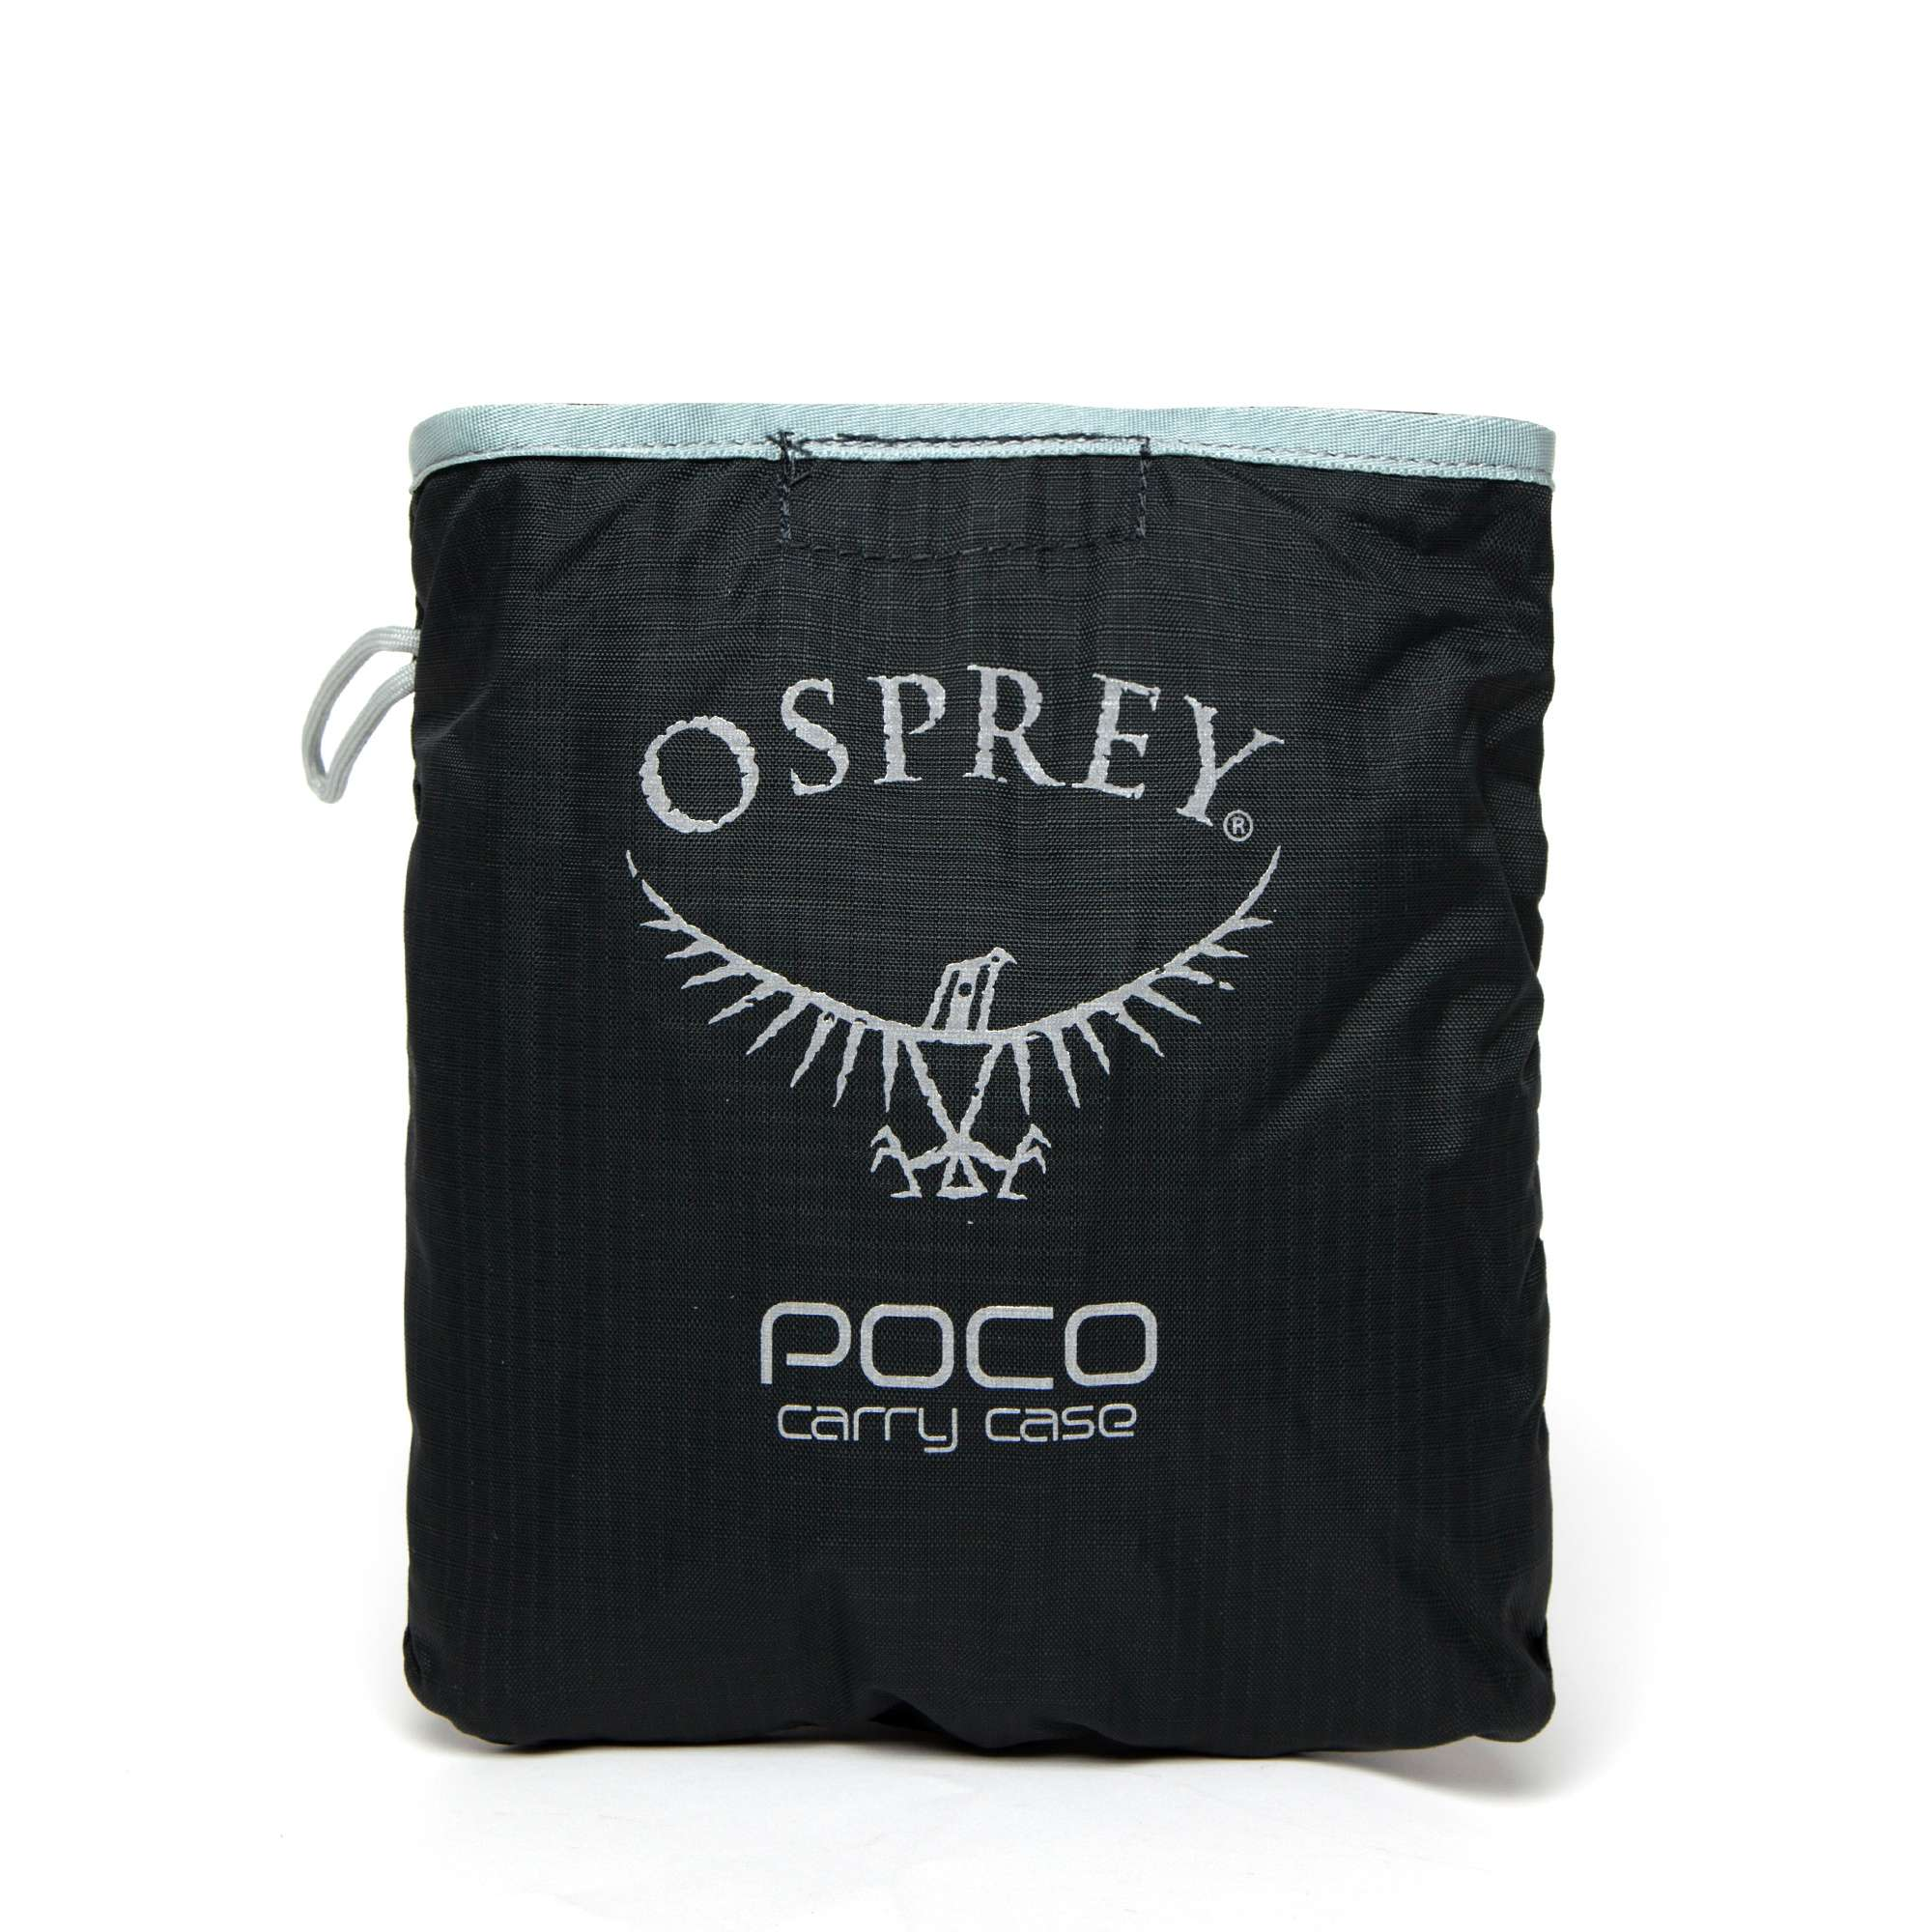 OSPREY Poco Child Carrier Carrying Case